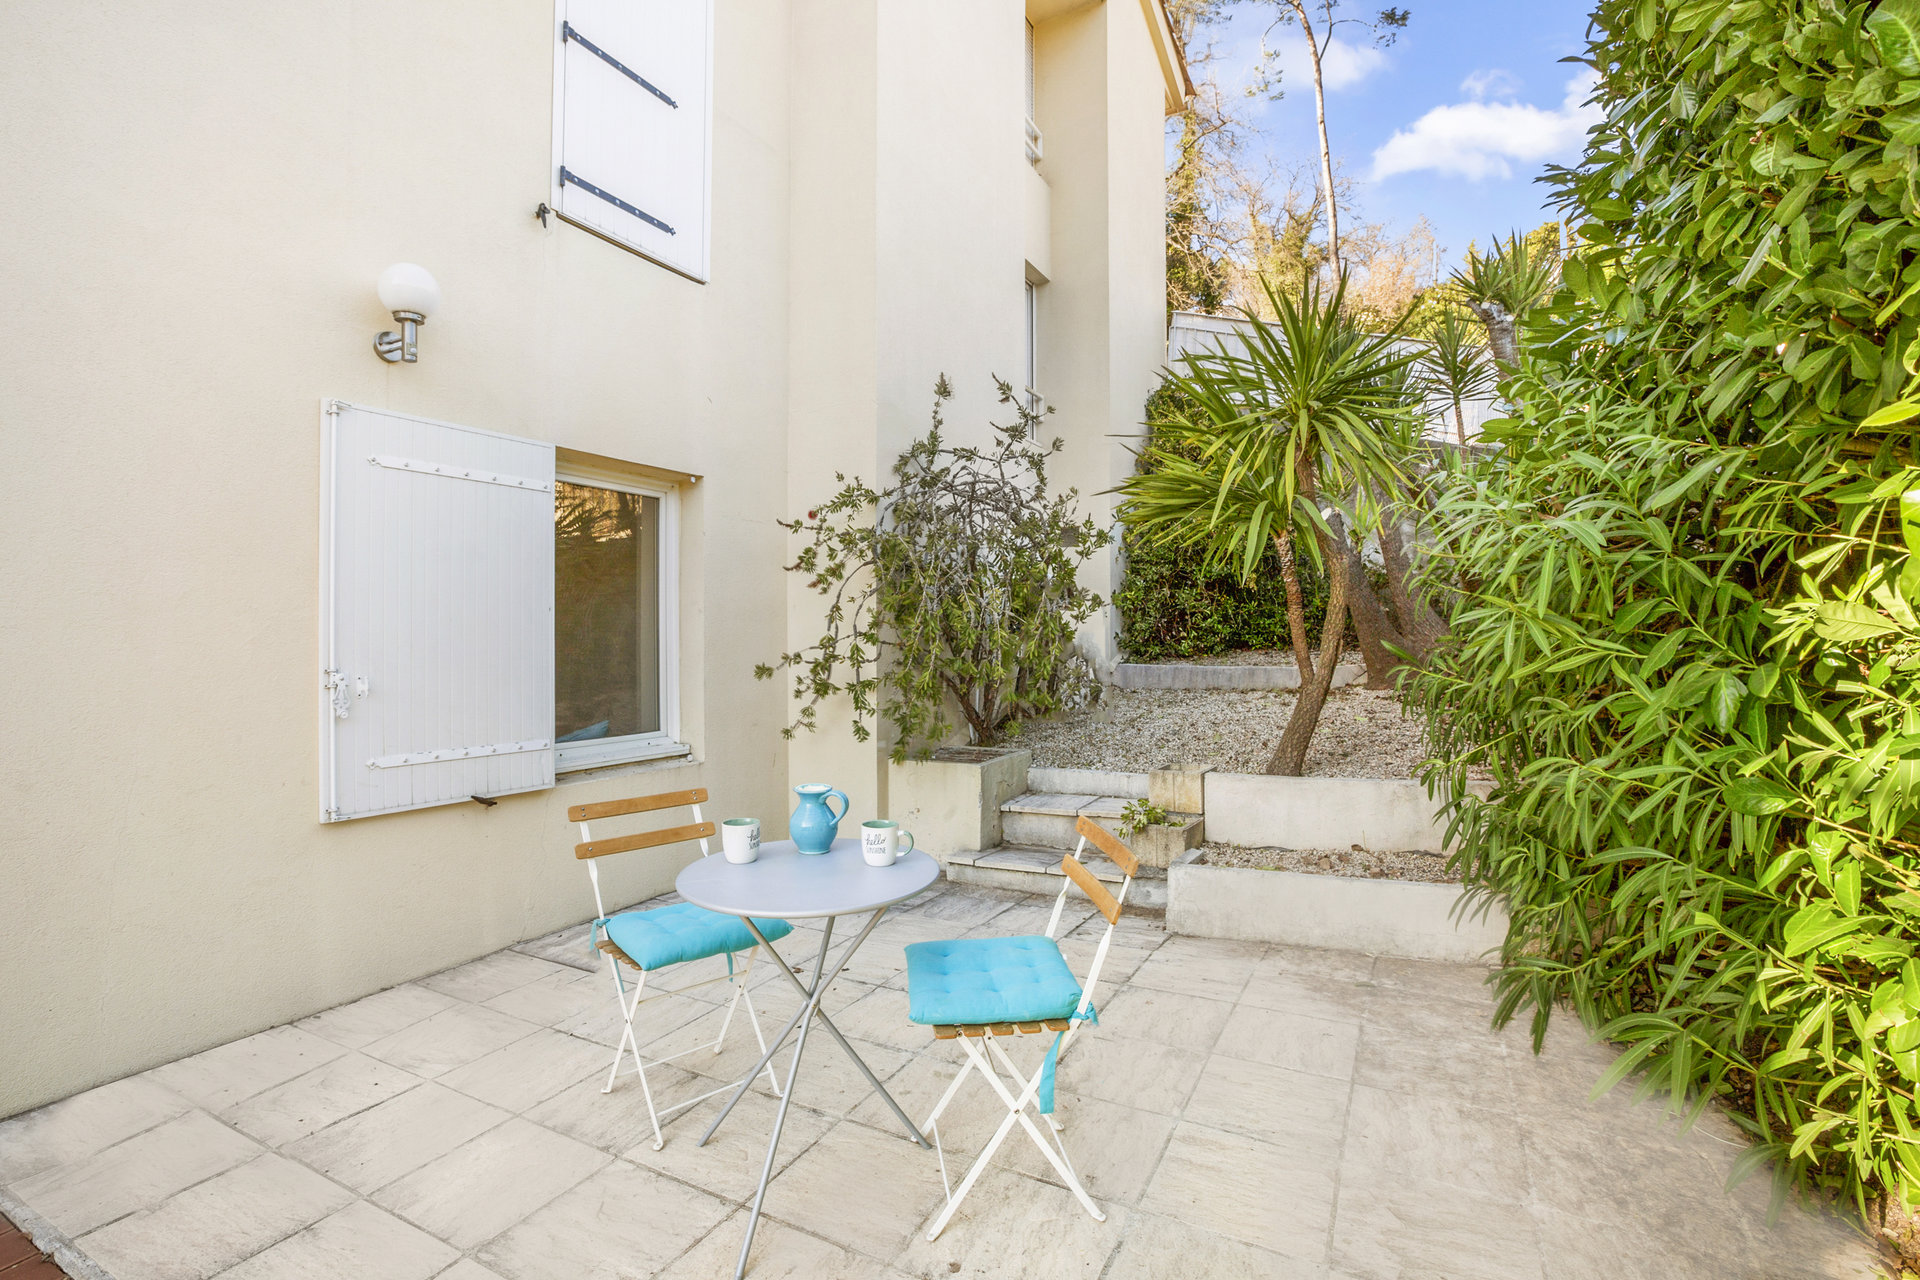 2 Bed apt with private terrace garden Valbonne village